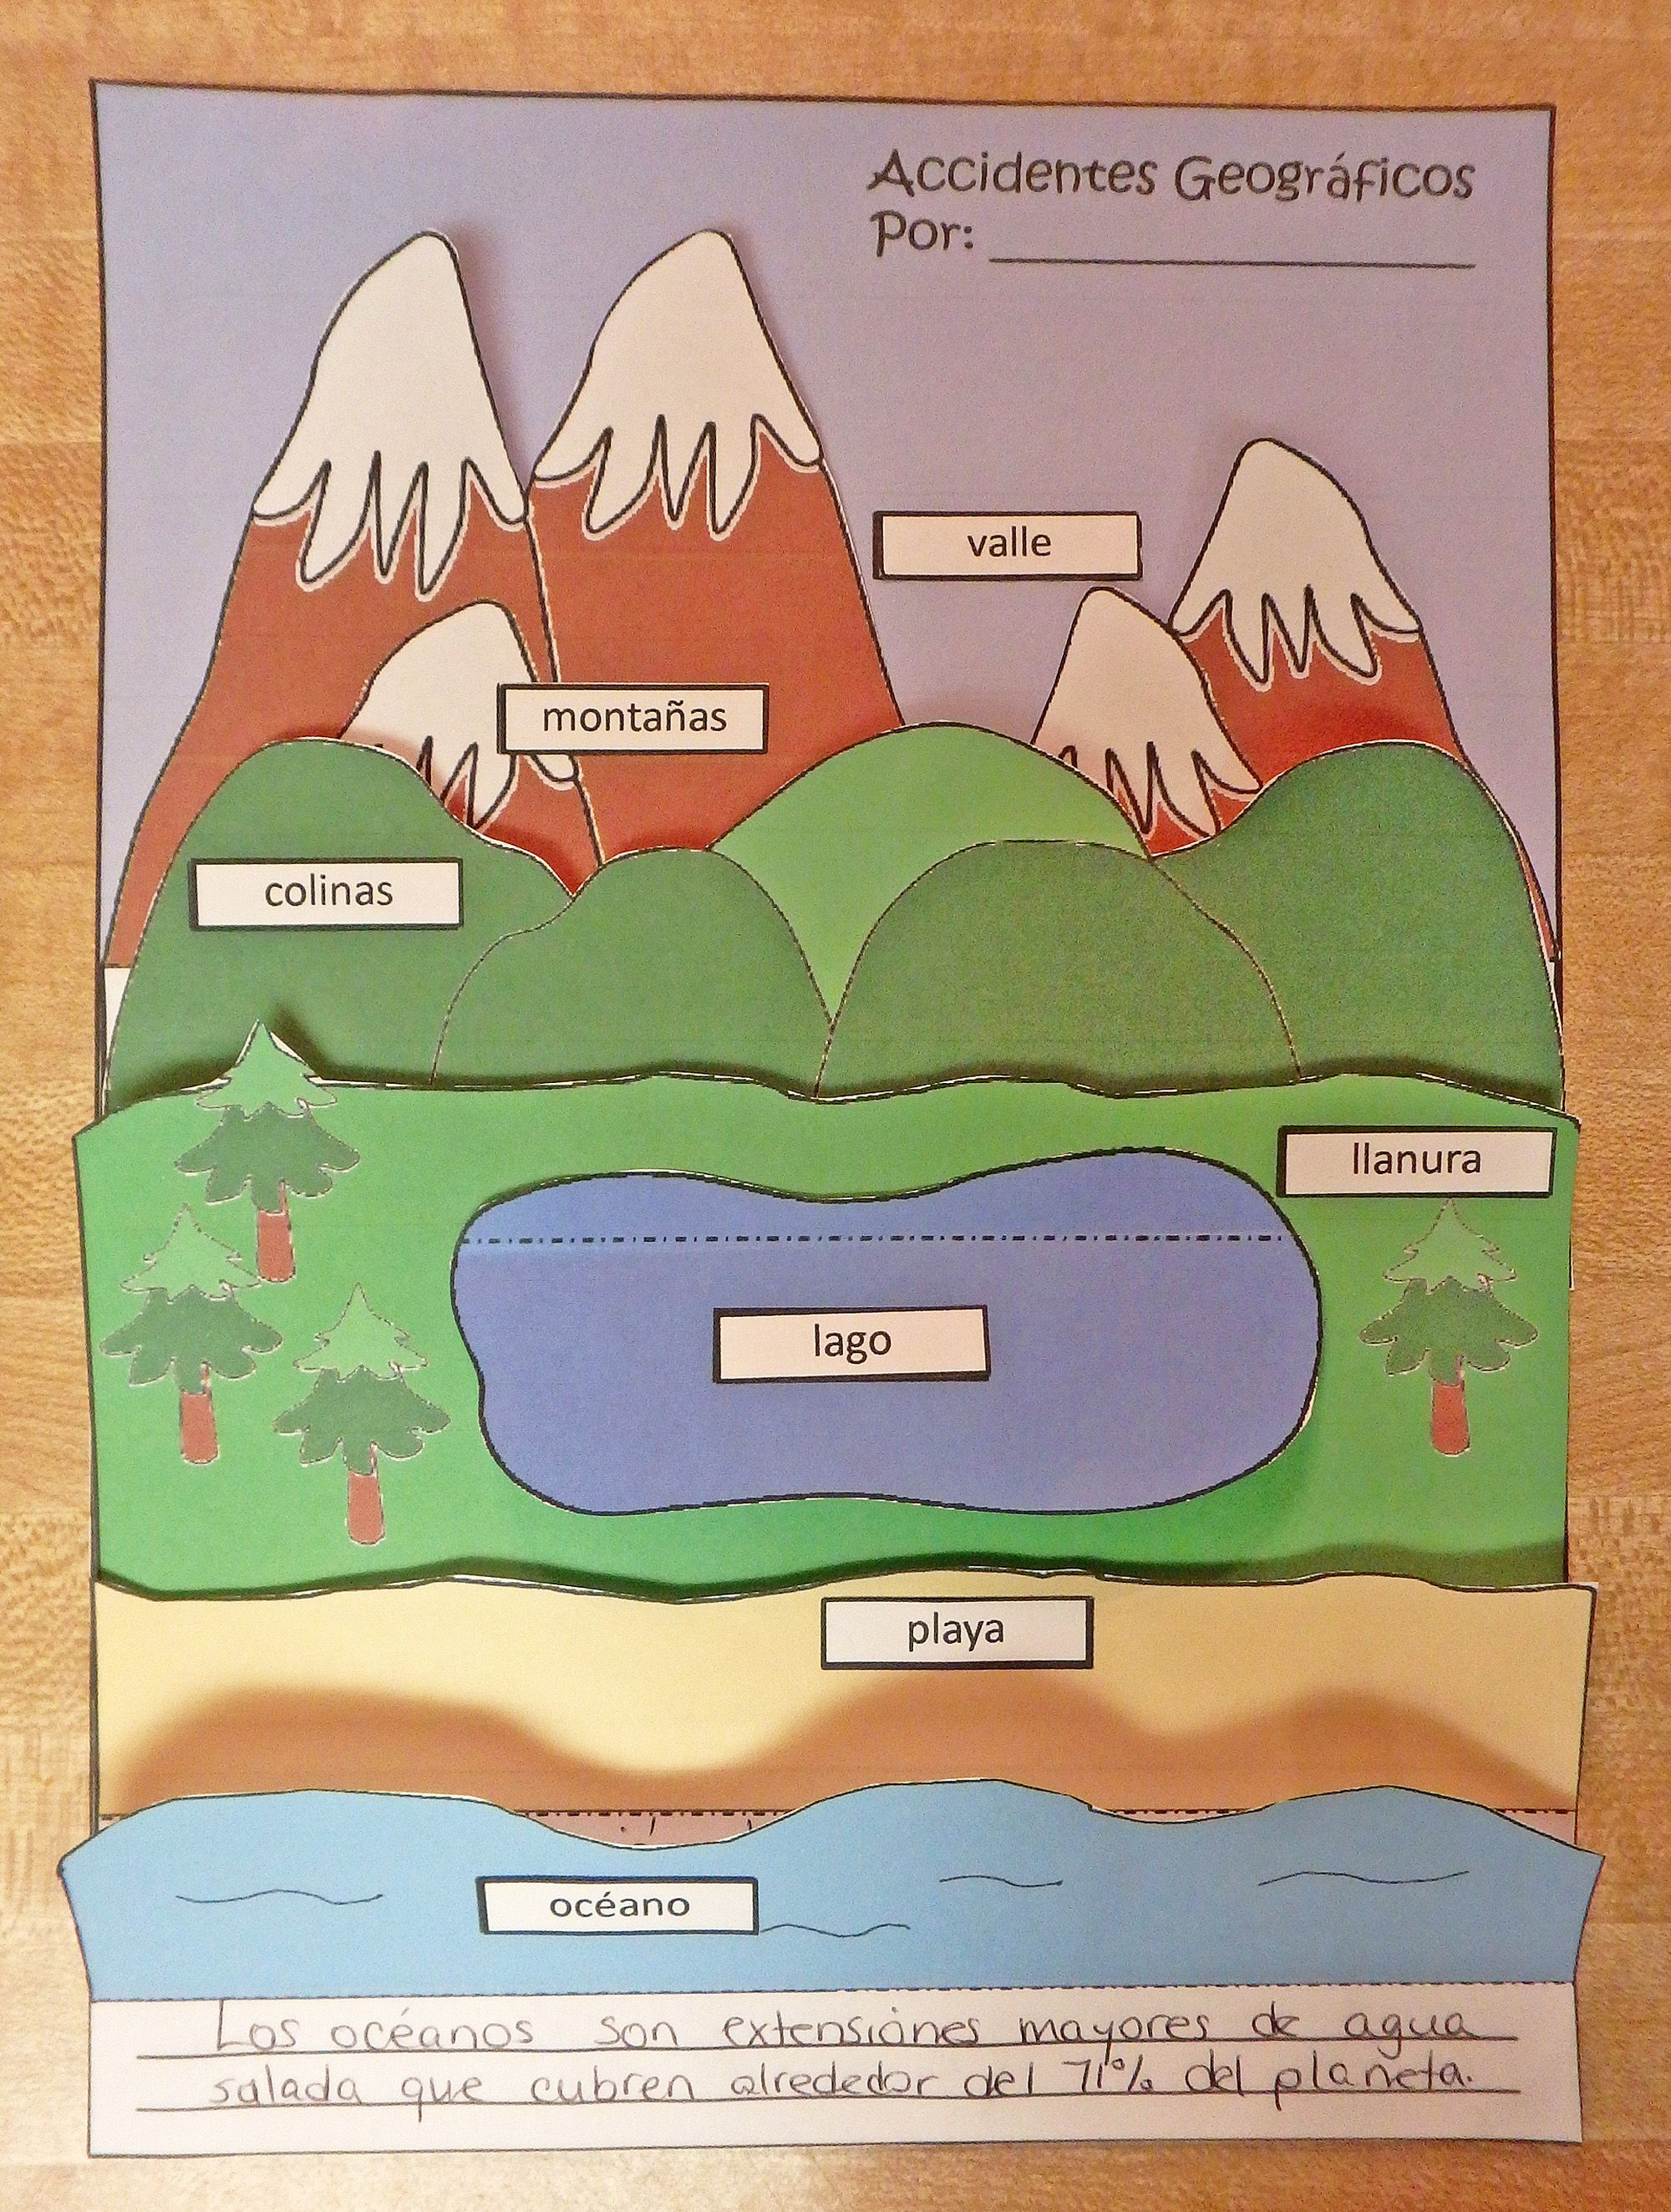 Landforms Accidentes Geograficos Layered Shapebook In